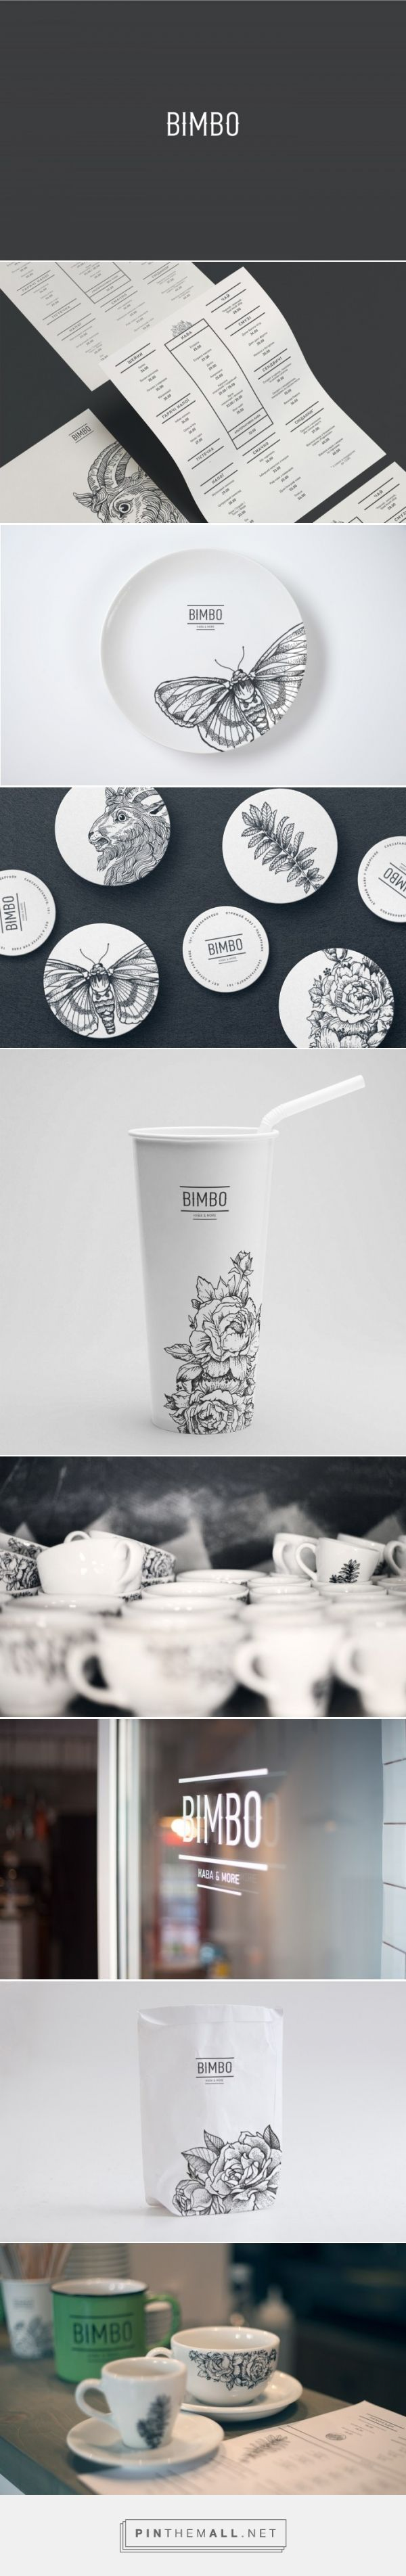 Bimbo Coffee Bar Branding by Grits + Grids | Fivestar Branding – Design and Branding Agency & Inspiration Gallery